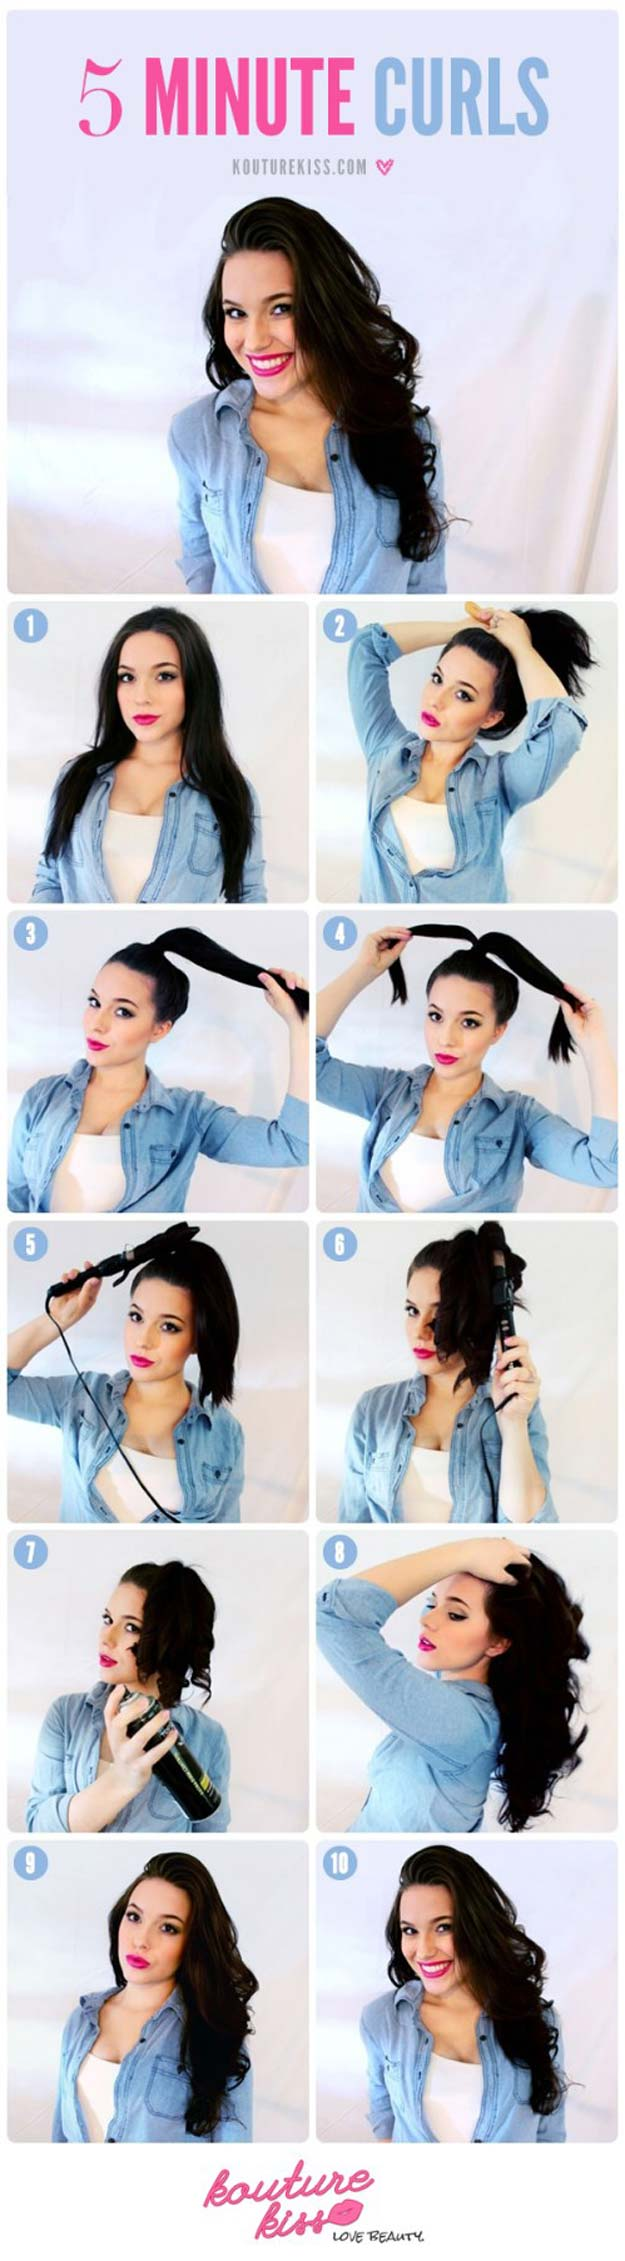 Cool and Easy DIY Hairstyles - 5 Minute Curls - Quick and Easy Ideas for Back to School Styles for Medium, Short and Long Hair - Fun Tips and Best Step by Step Tutorials for Teens, Prom, Weddings, Special Occasions and Work. Up dos, Braids, Top Knots and Buns, Super Summer Looks #hairstyles #hair #teens #easyhairstyles #diy #beauty